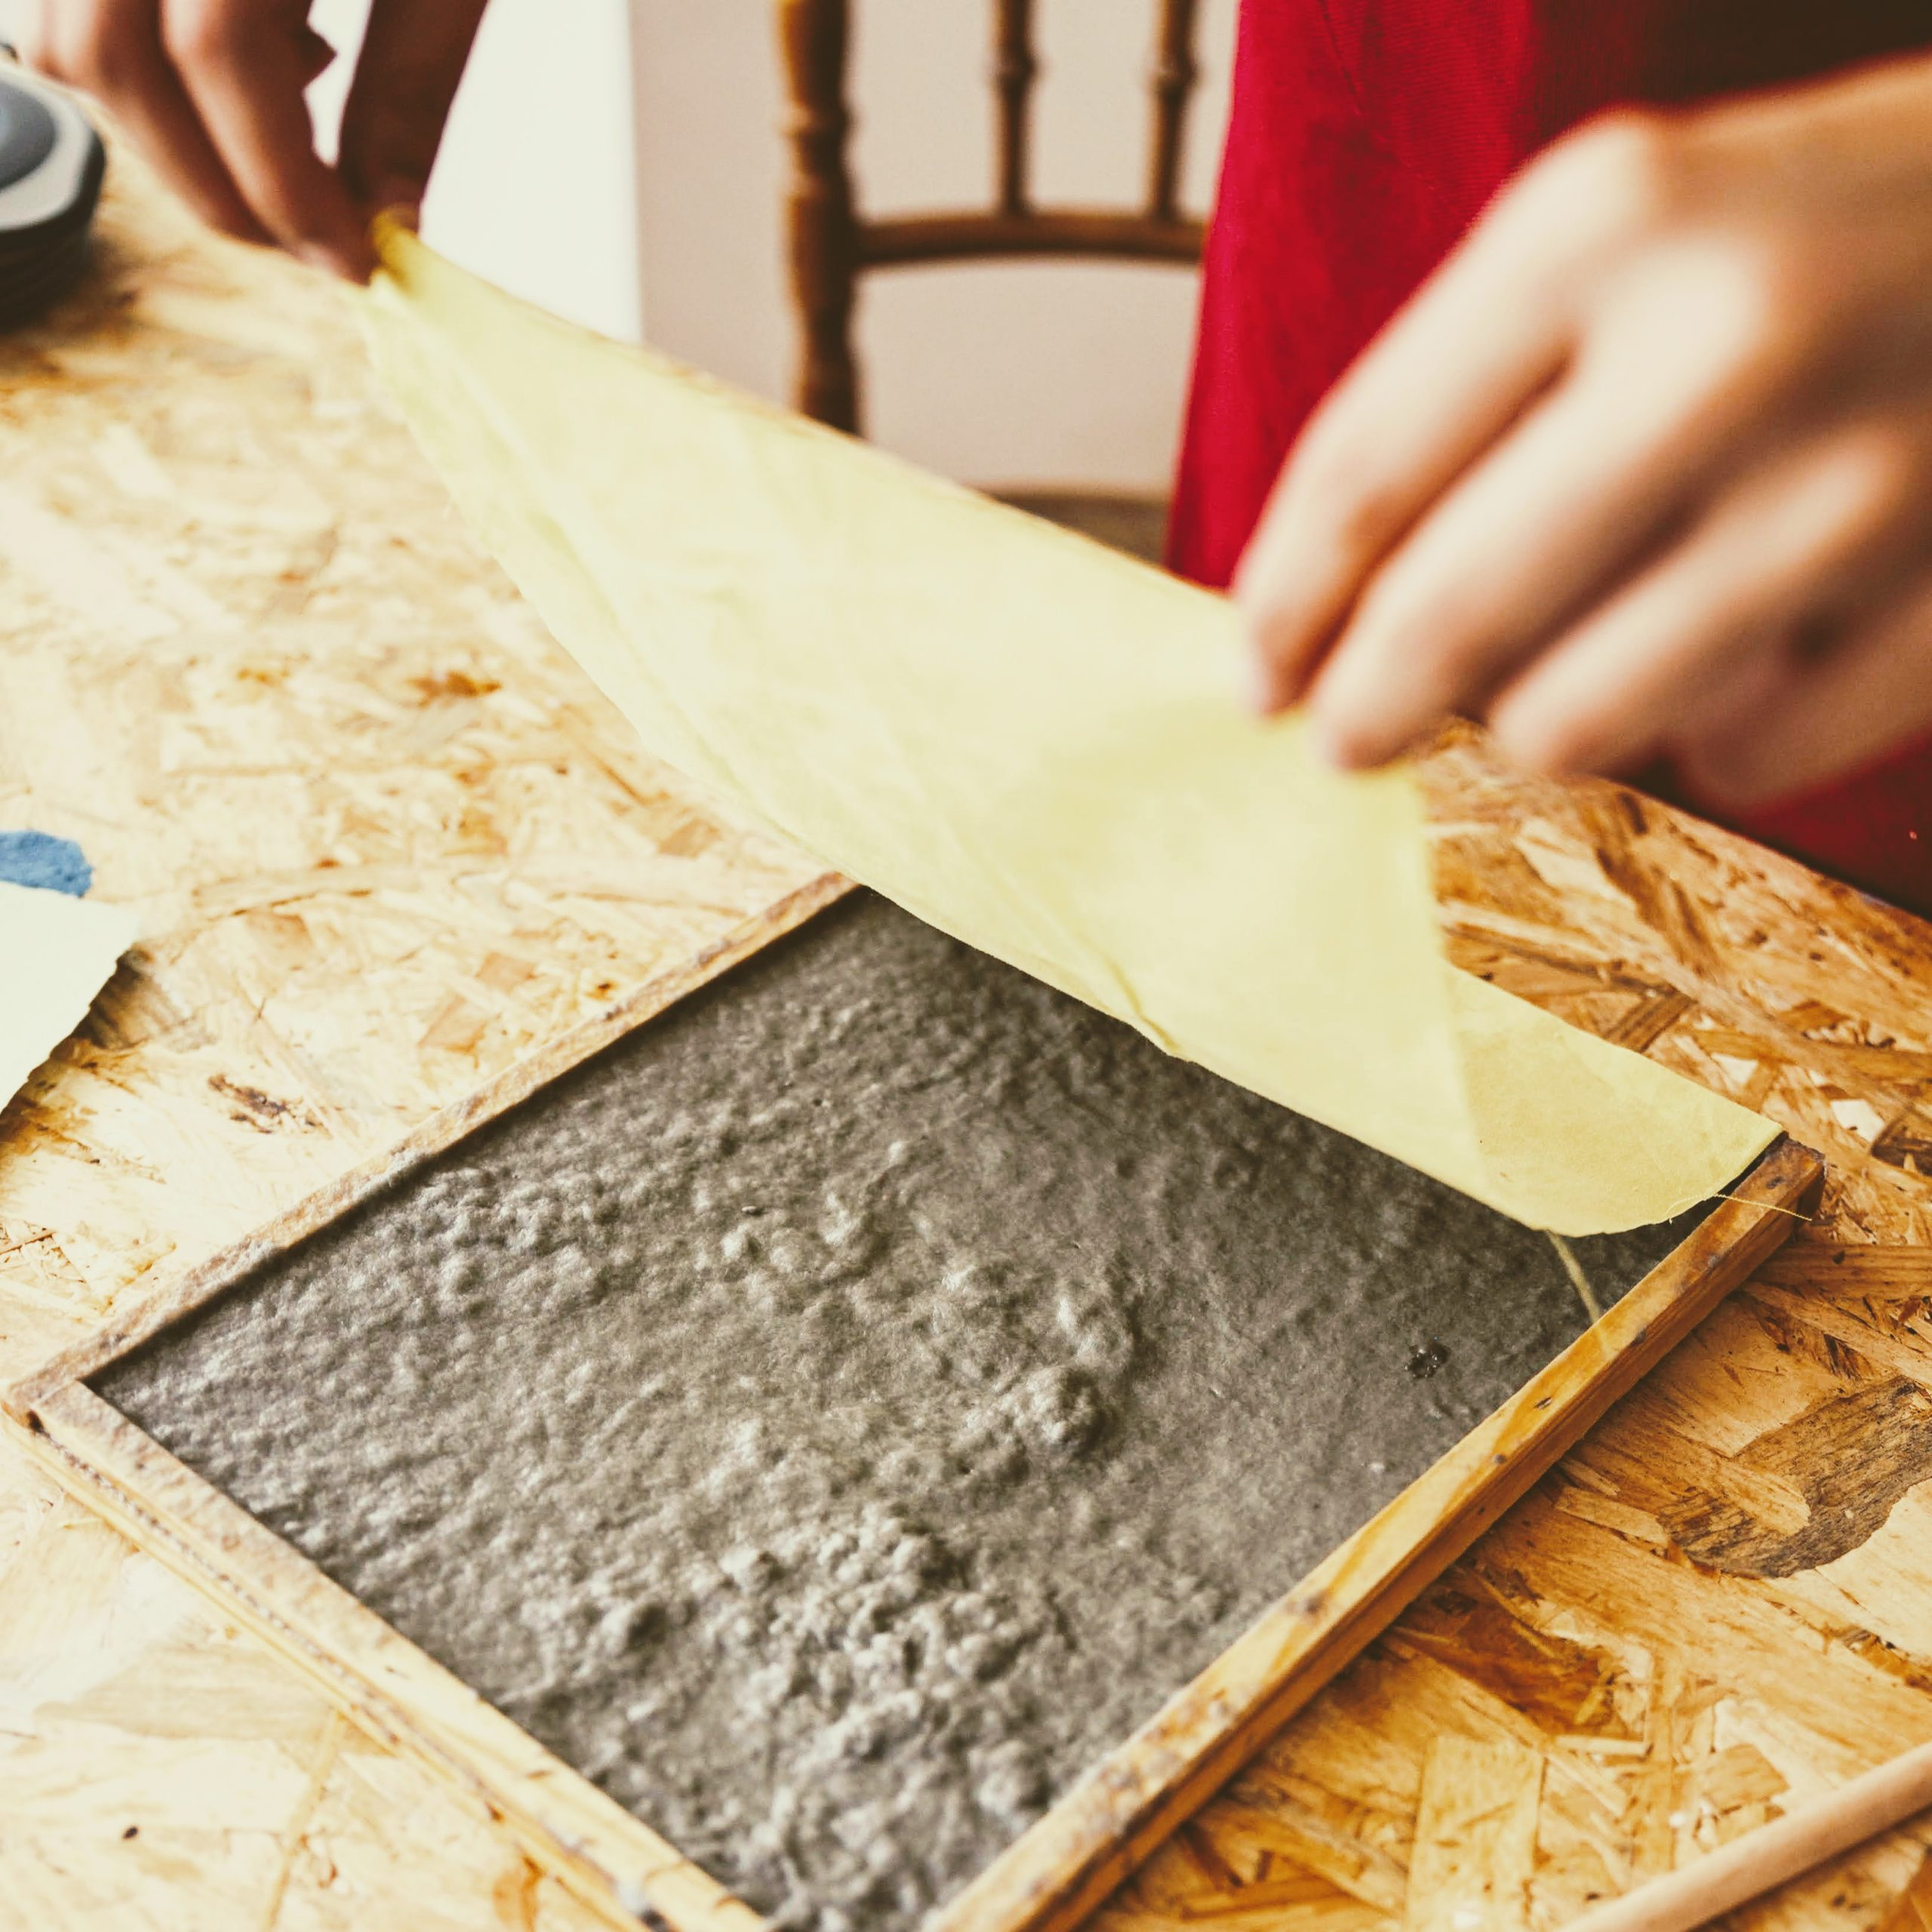 seeded paper product being made